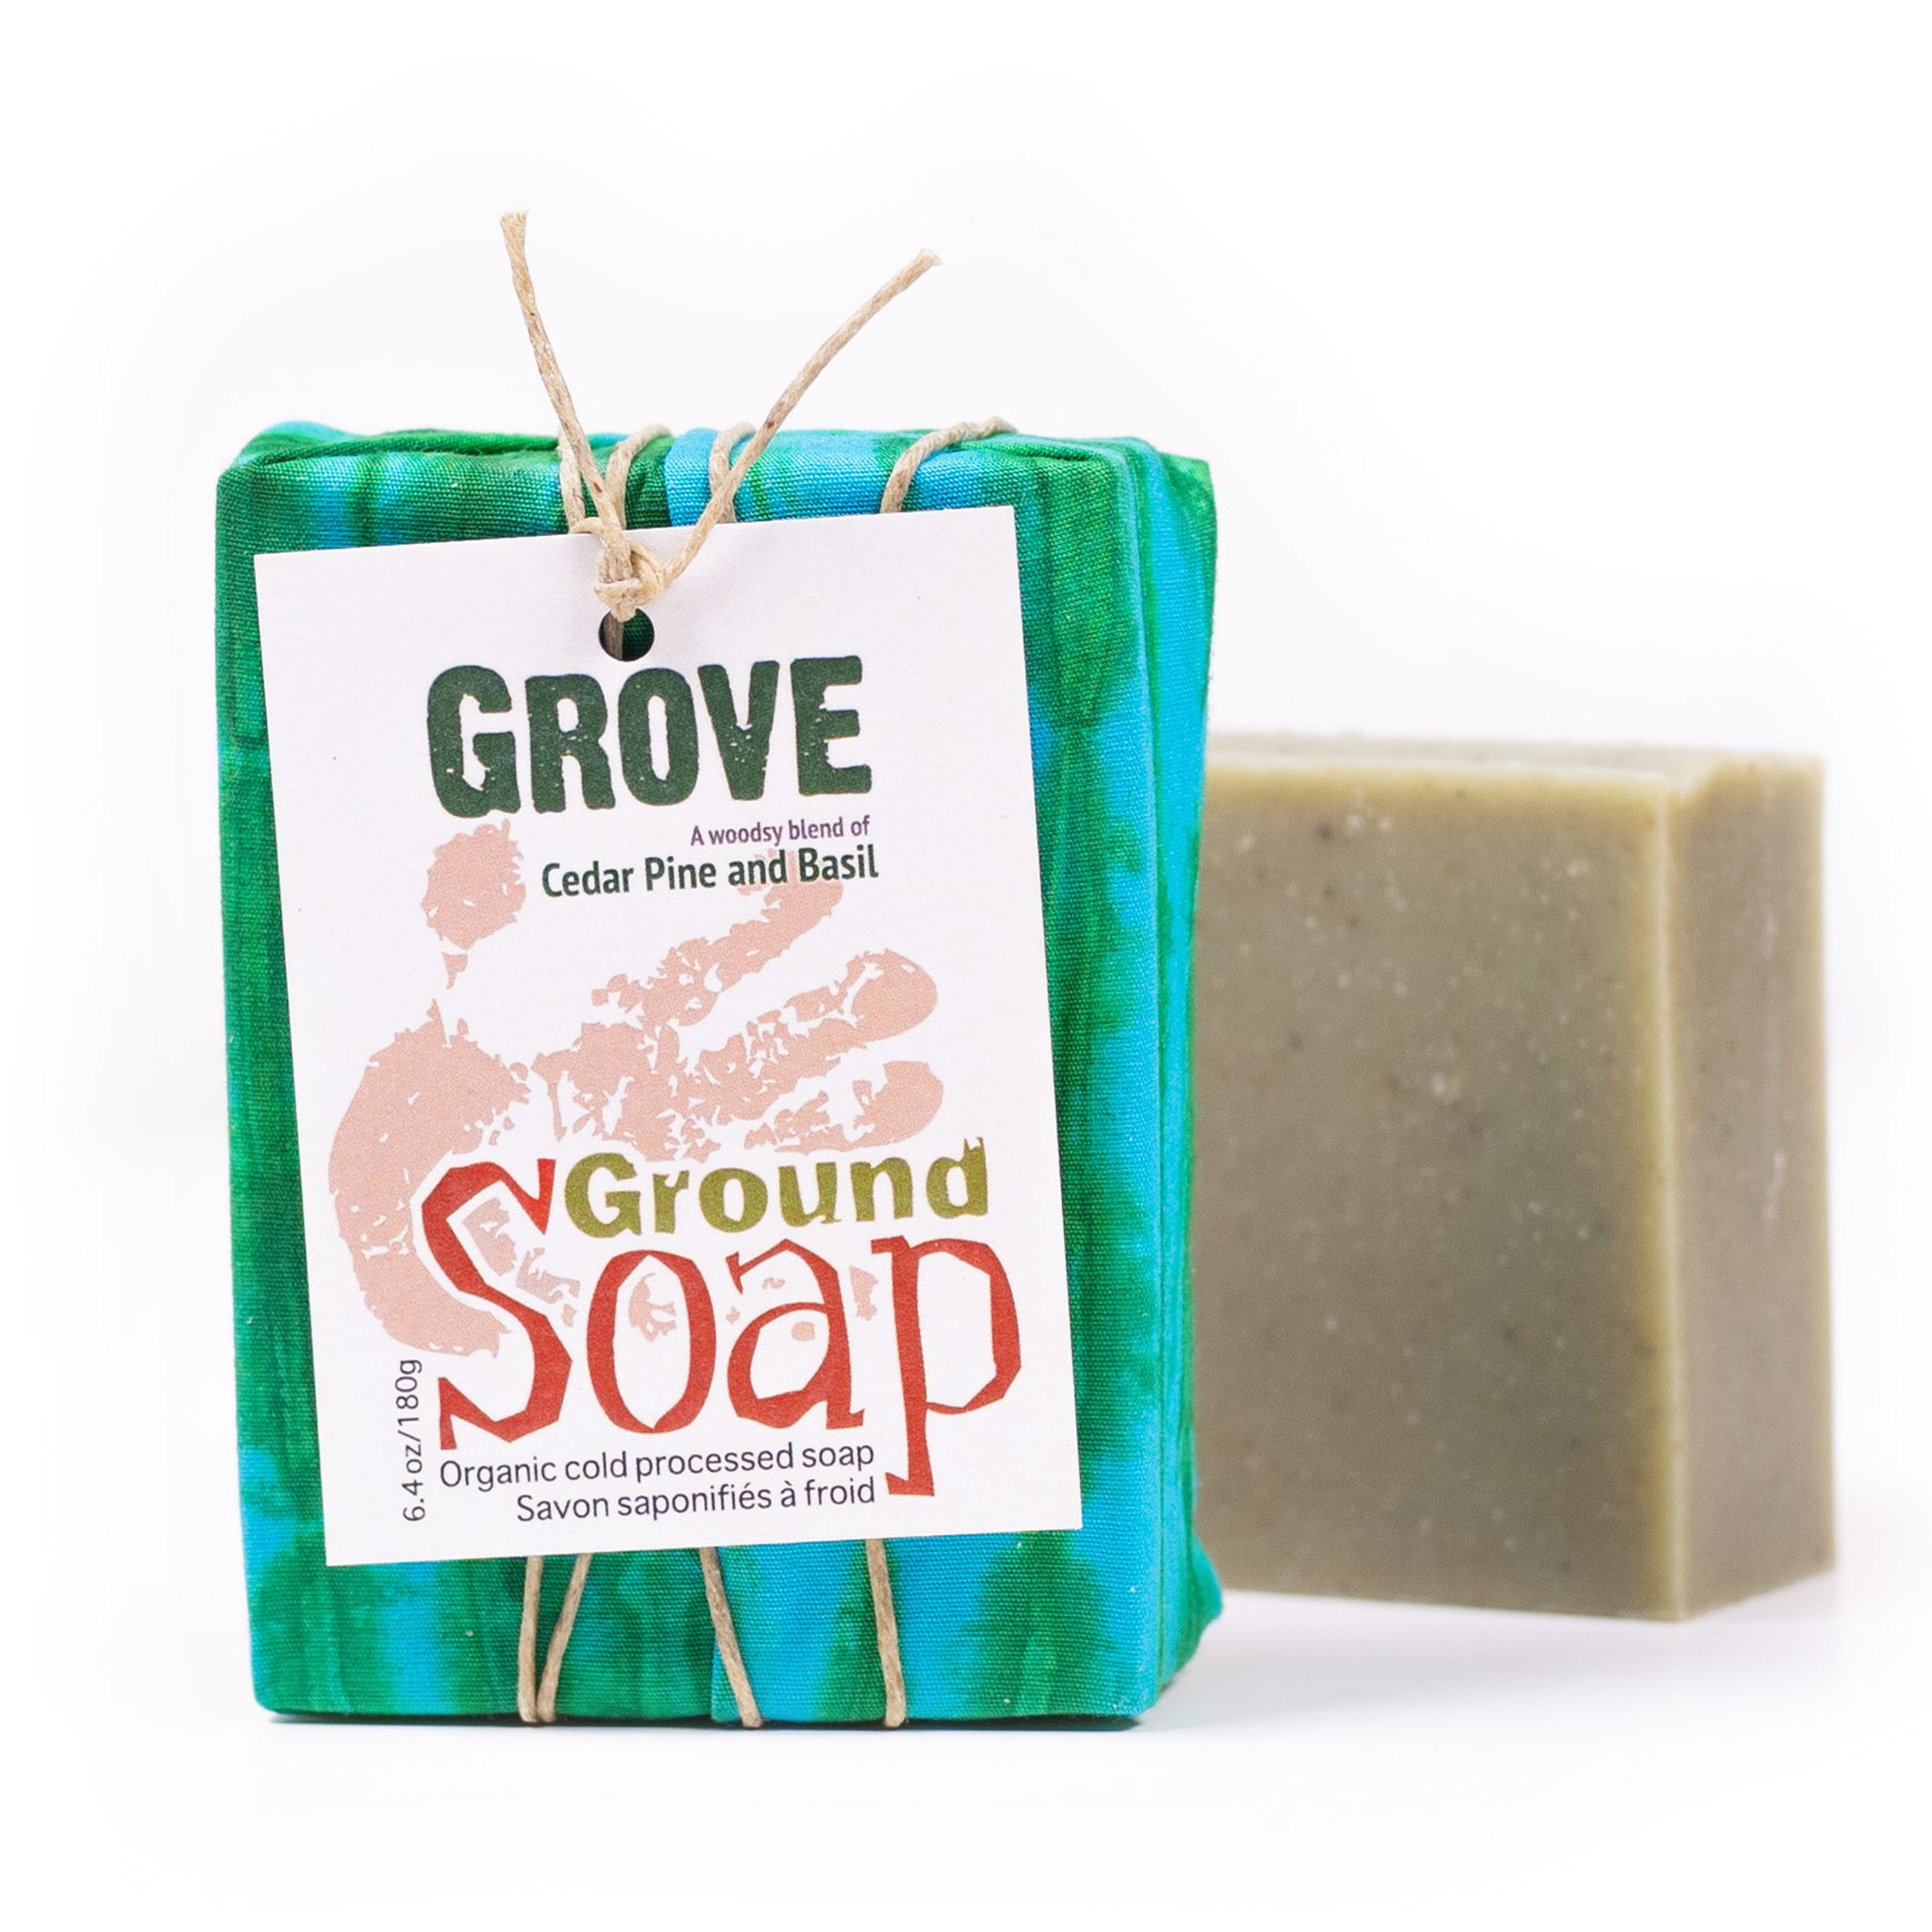 Grove cedar & Pine essential oil and rhassoul clay organic bar soap from ground Soap.